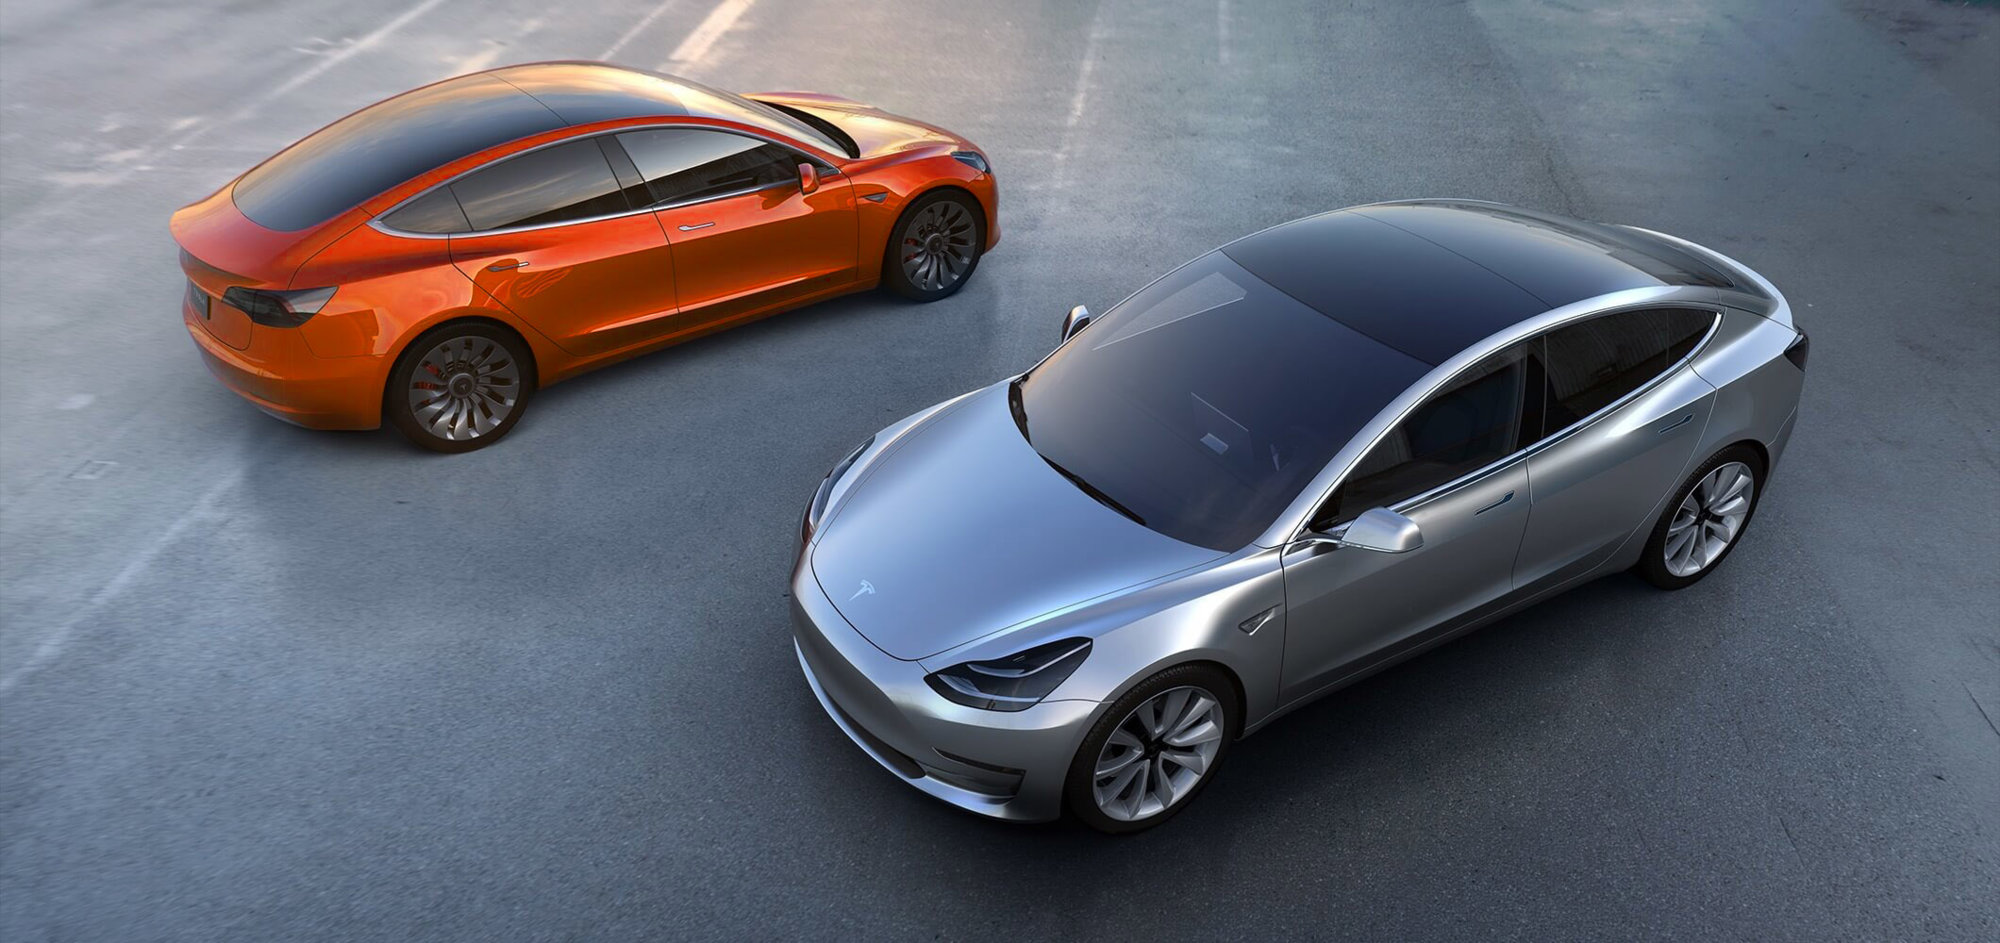 model3_colorMockup_orange_v01.jpg